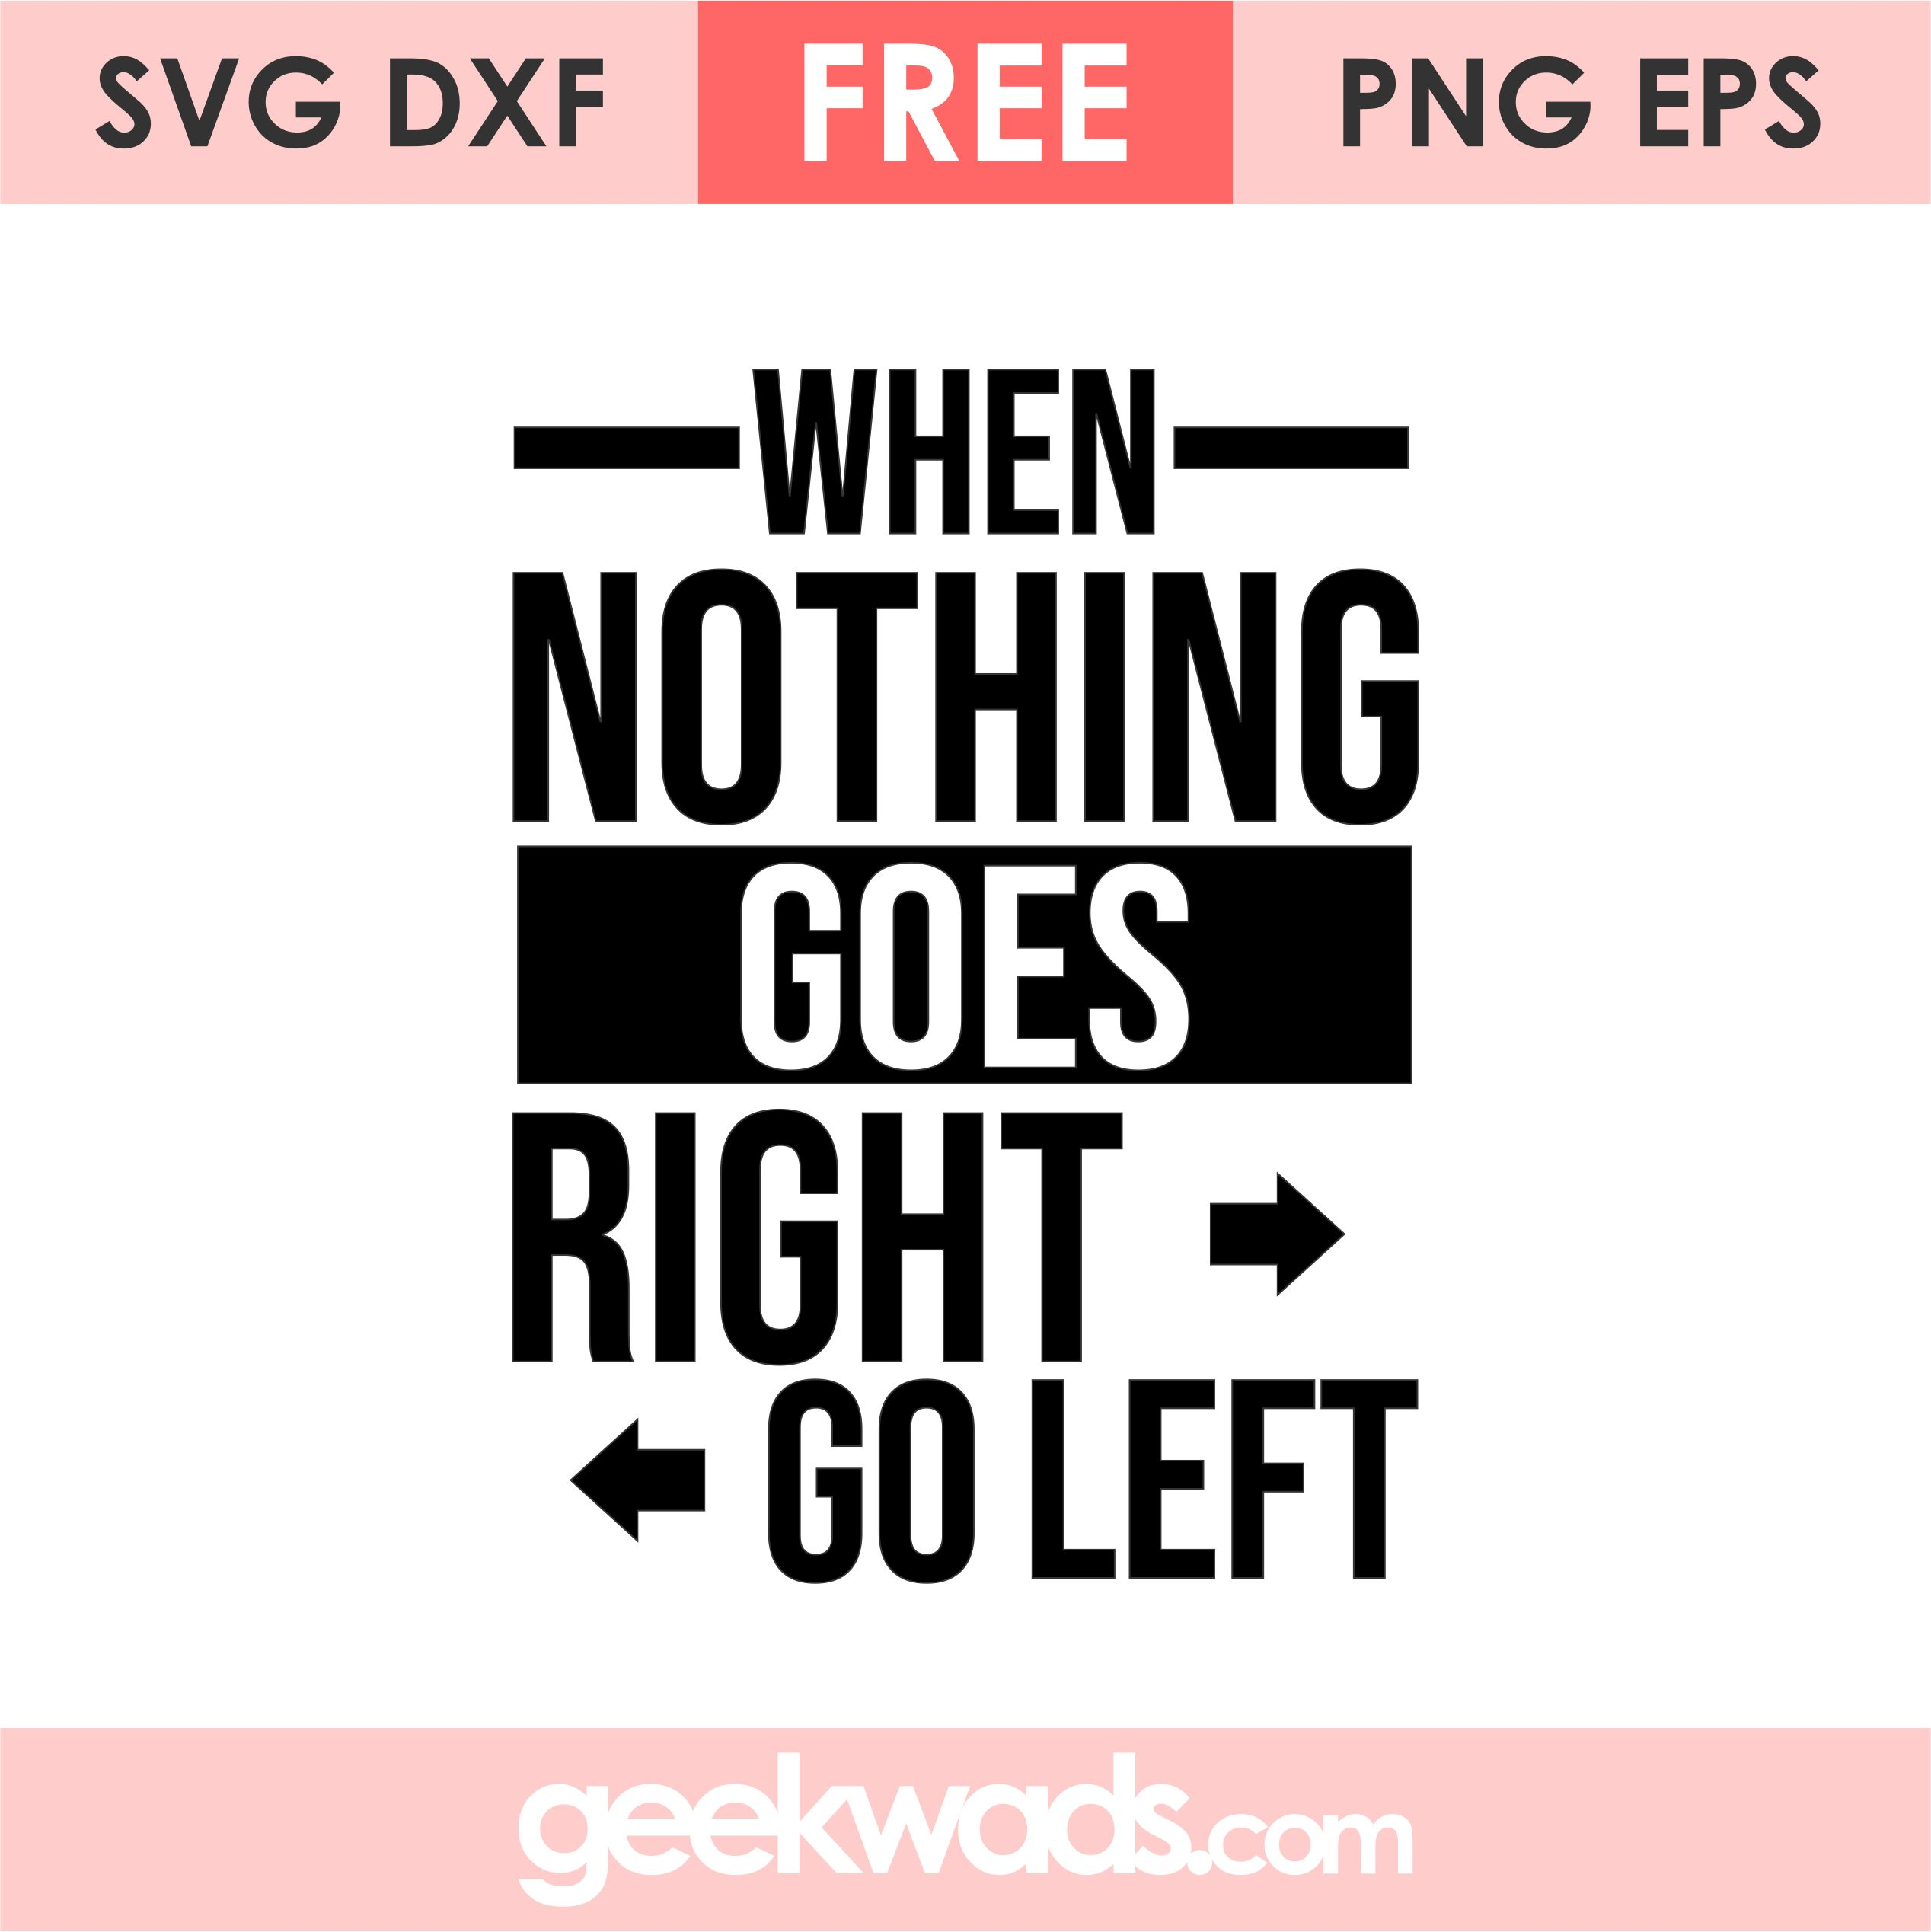 When Nothing Goes Right Go Left svg